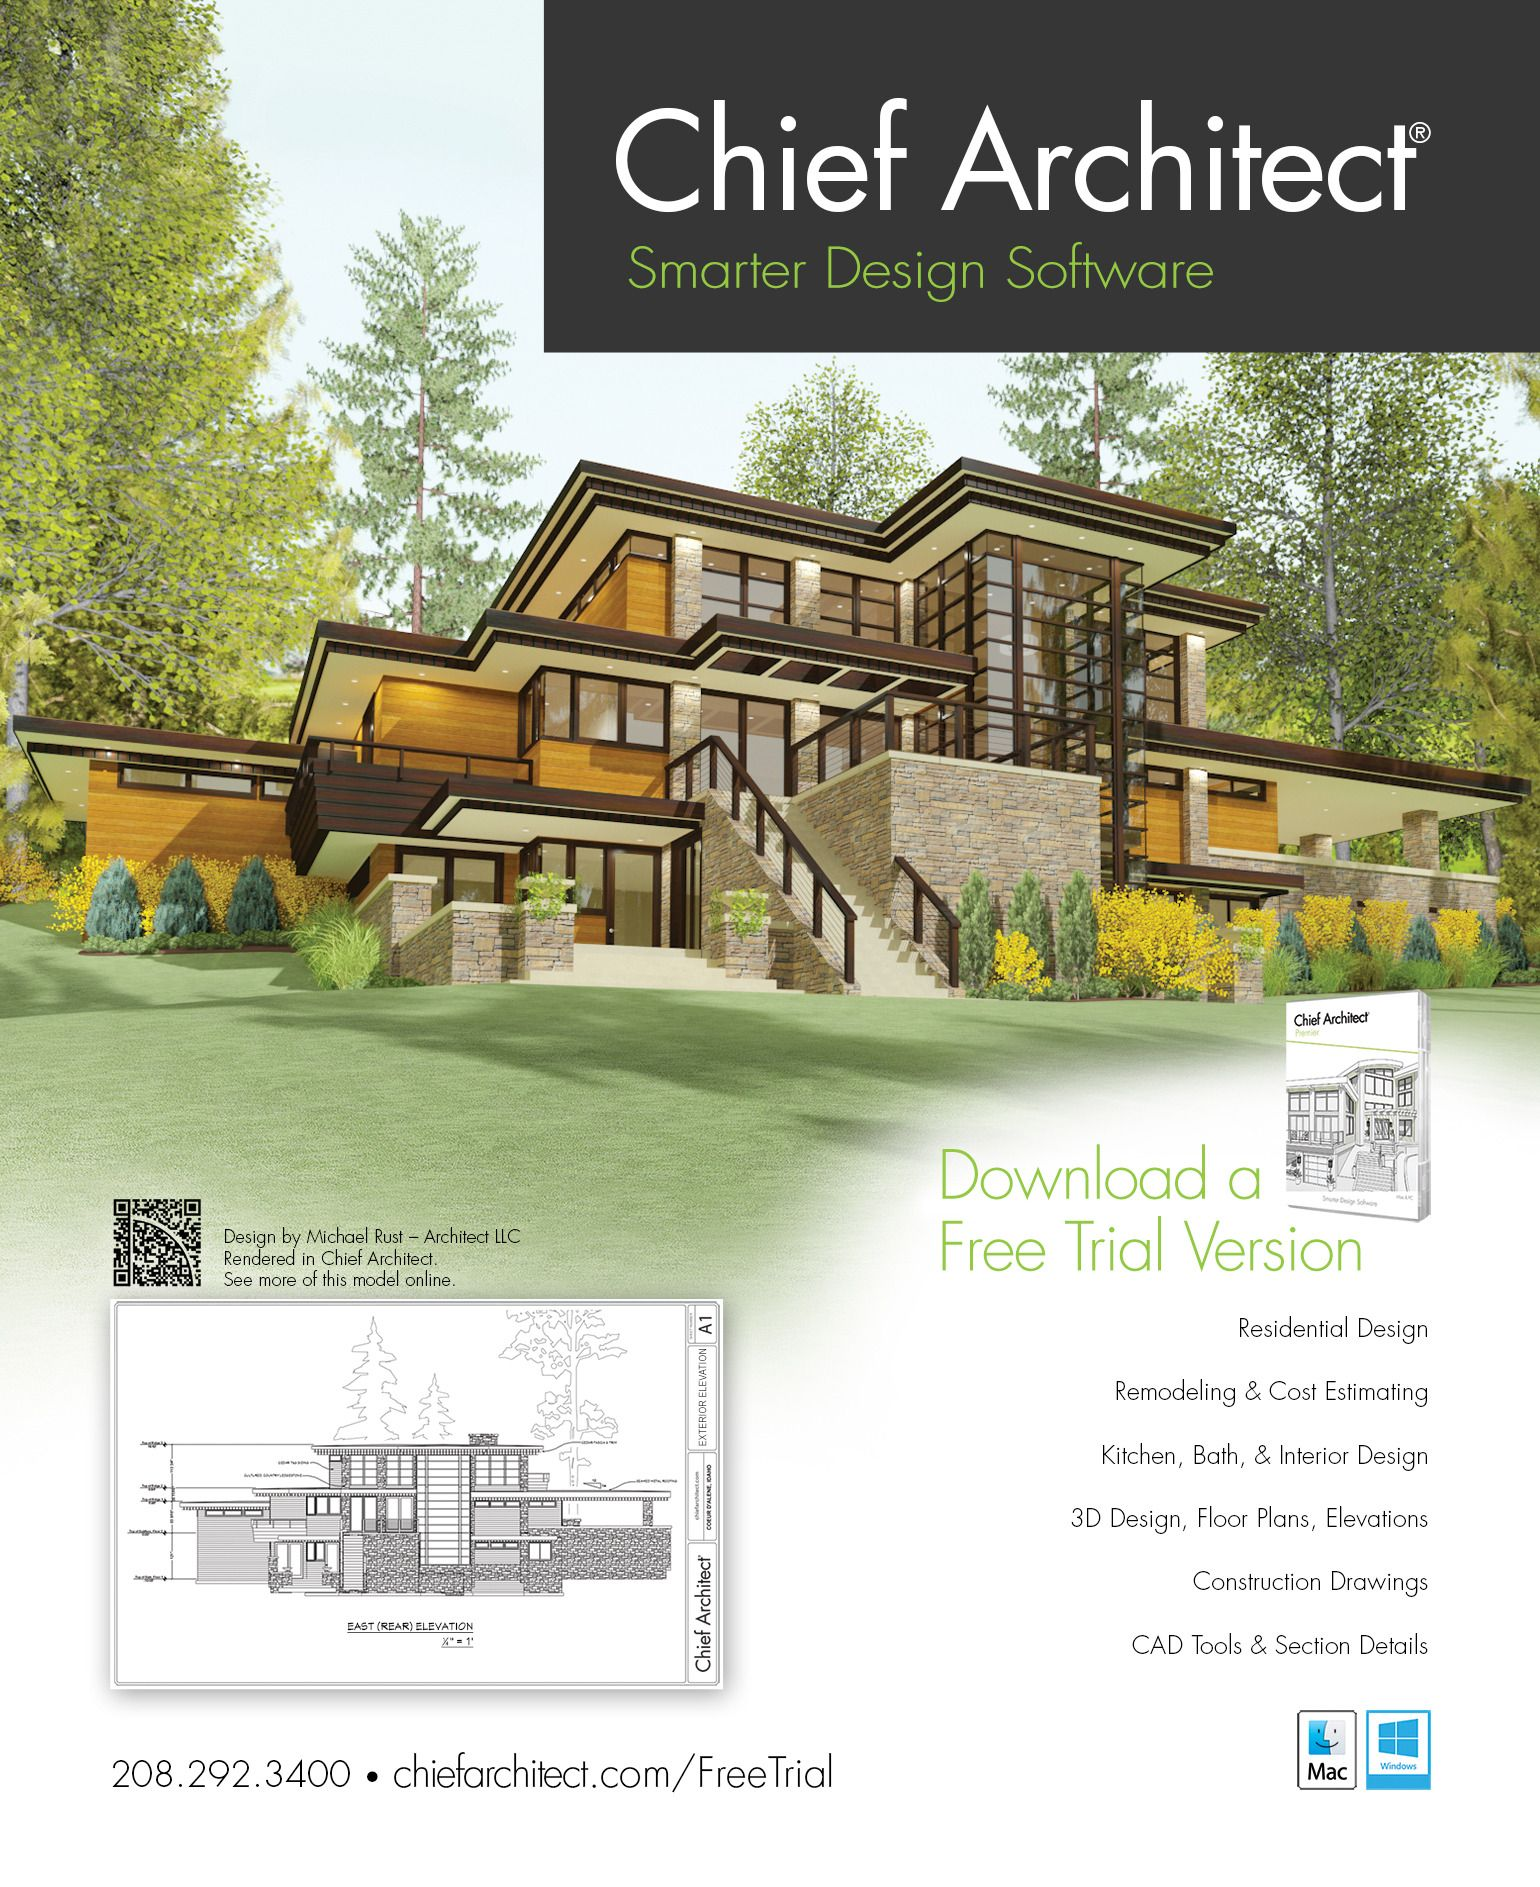 House Plans 3d Software Free Download 2020 In 2020 Home Design Software Free 3d Home Design Software Free House Design